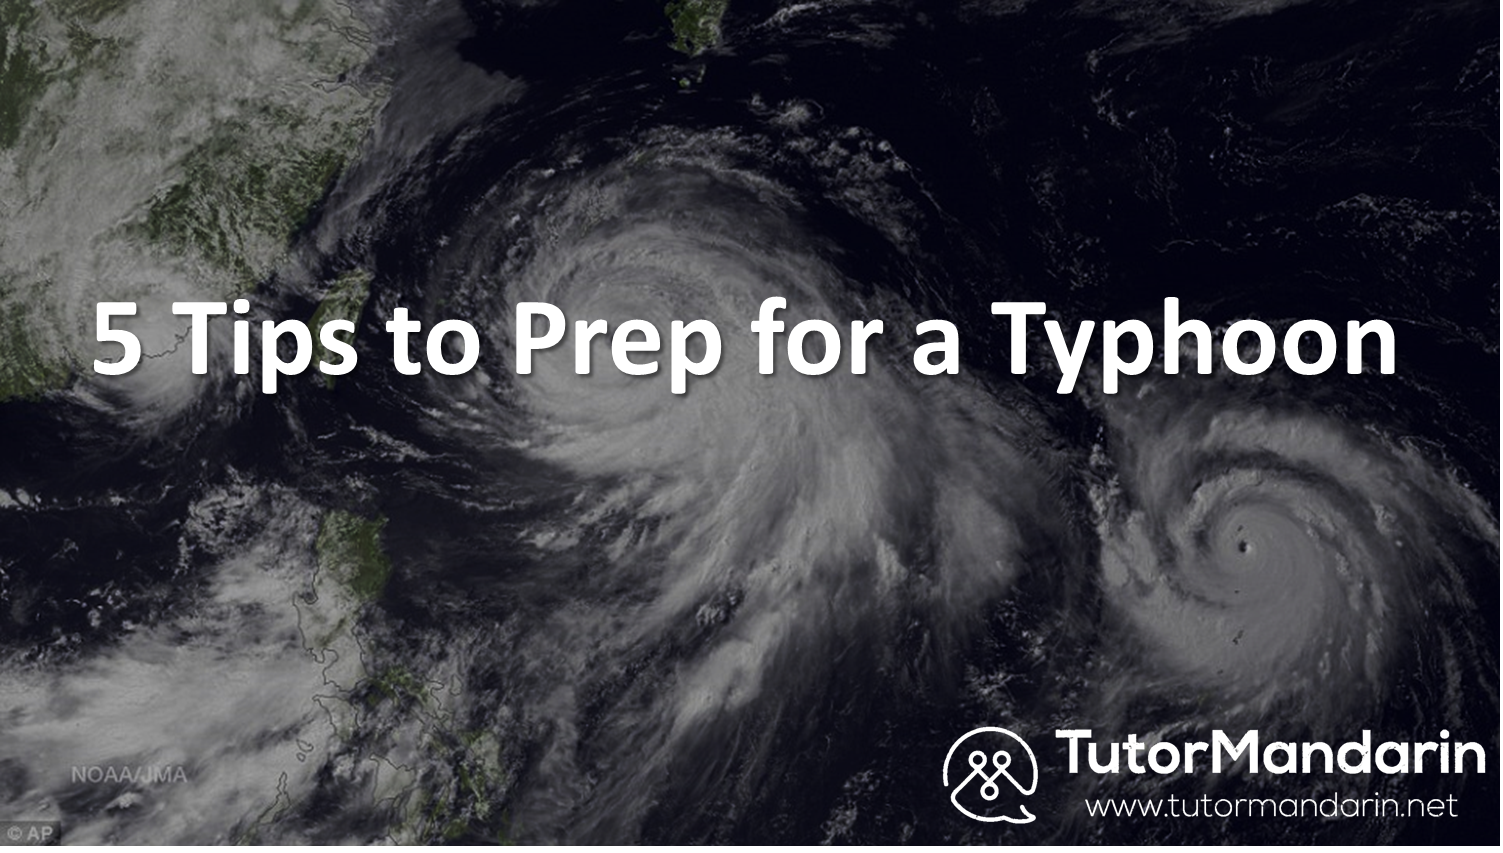 tips to prep for typhoon 1-on-1 online Chinese lessons